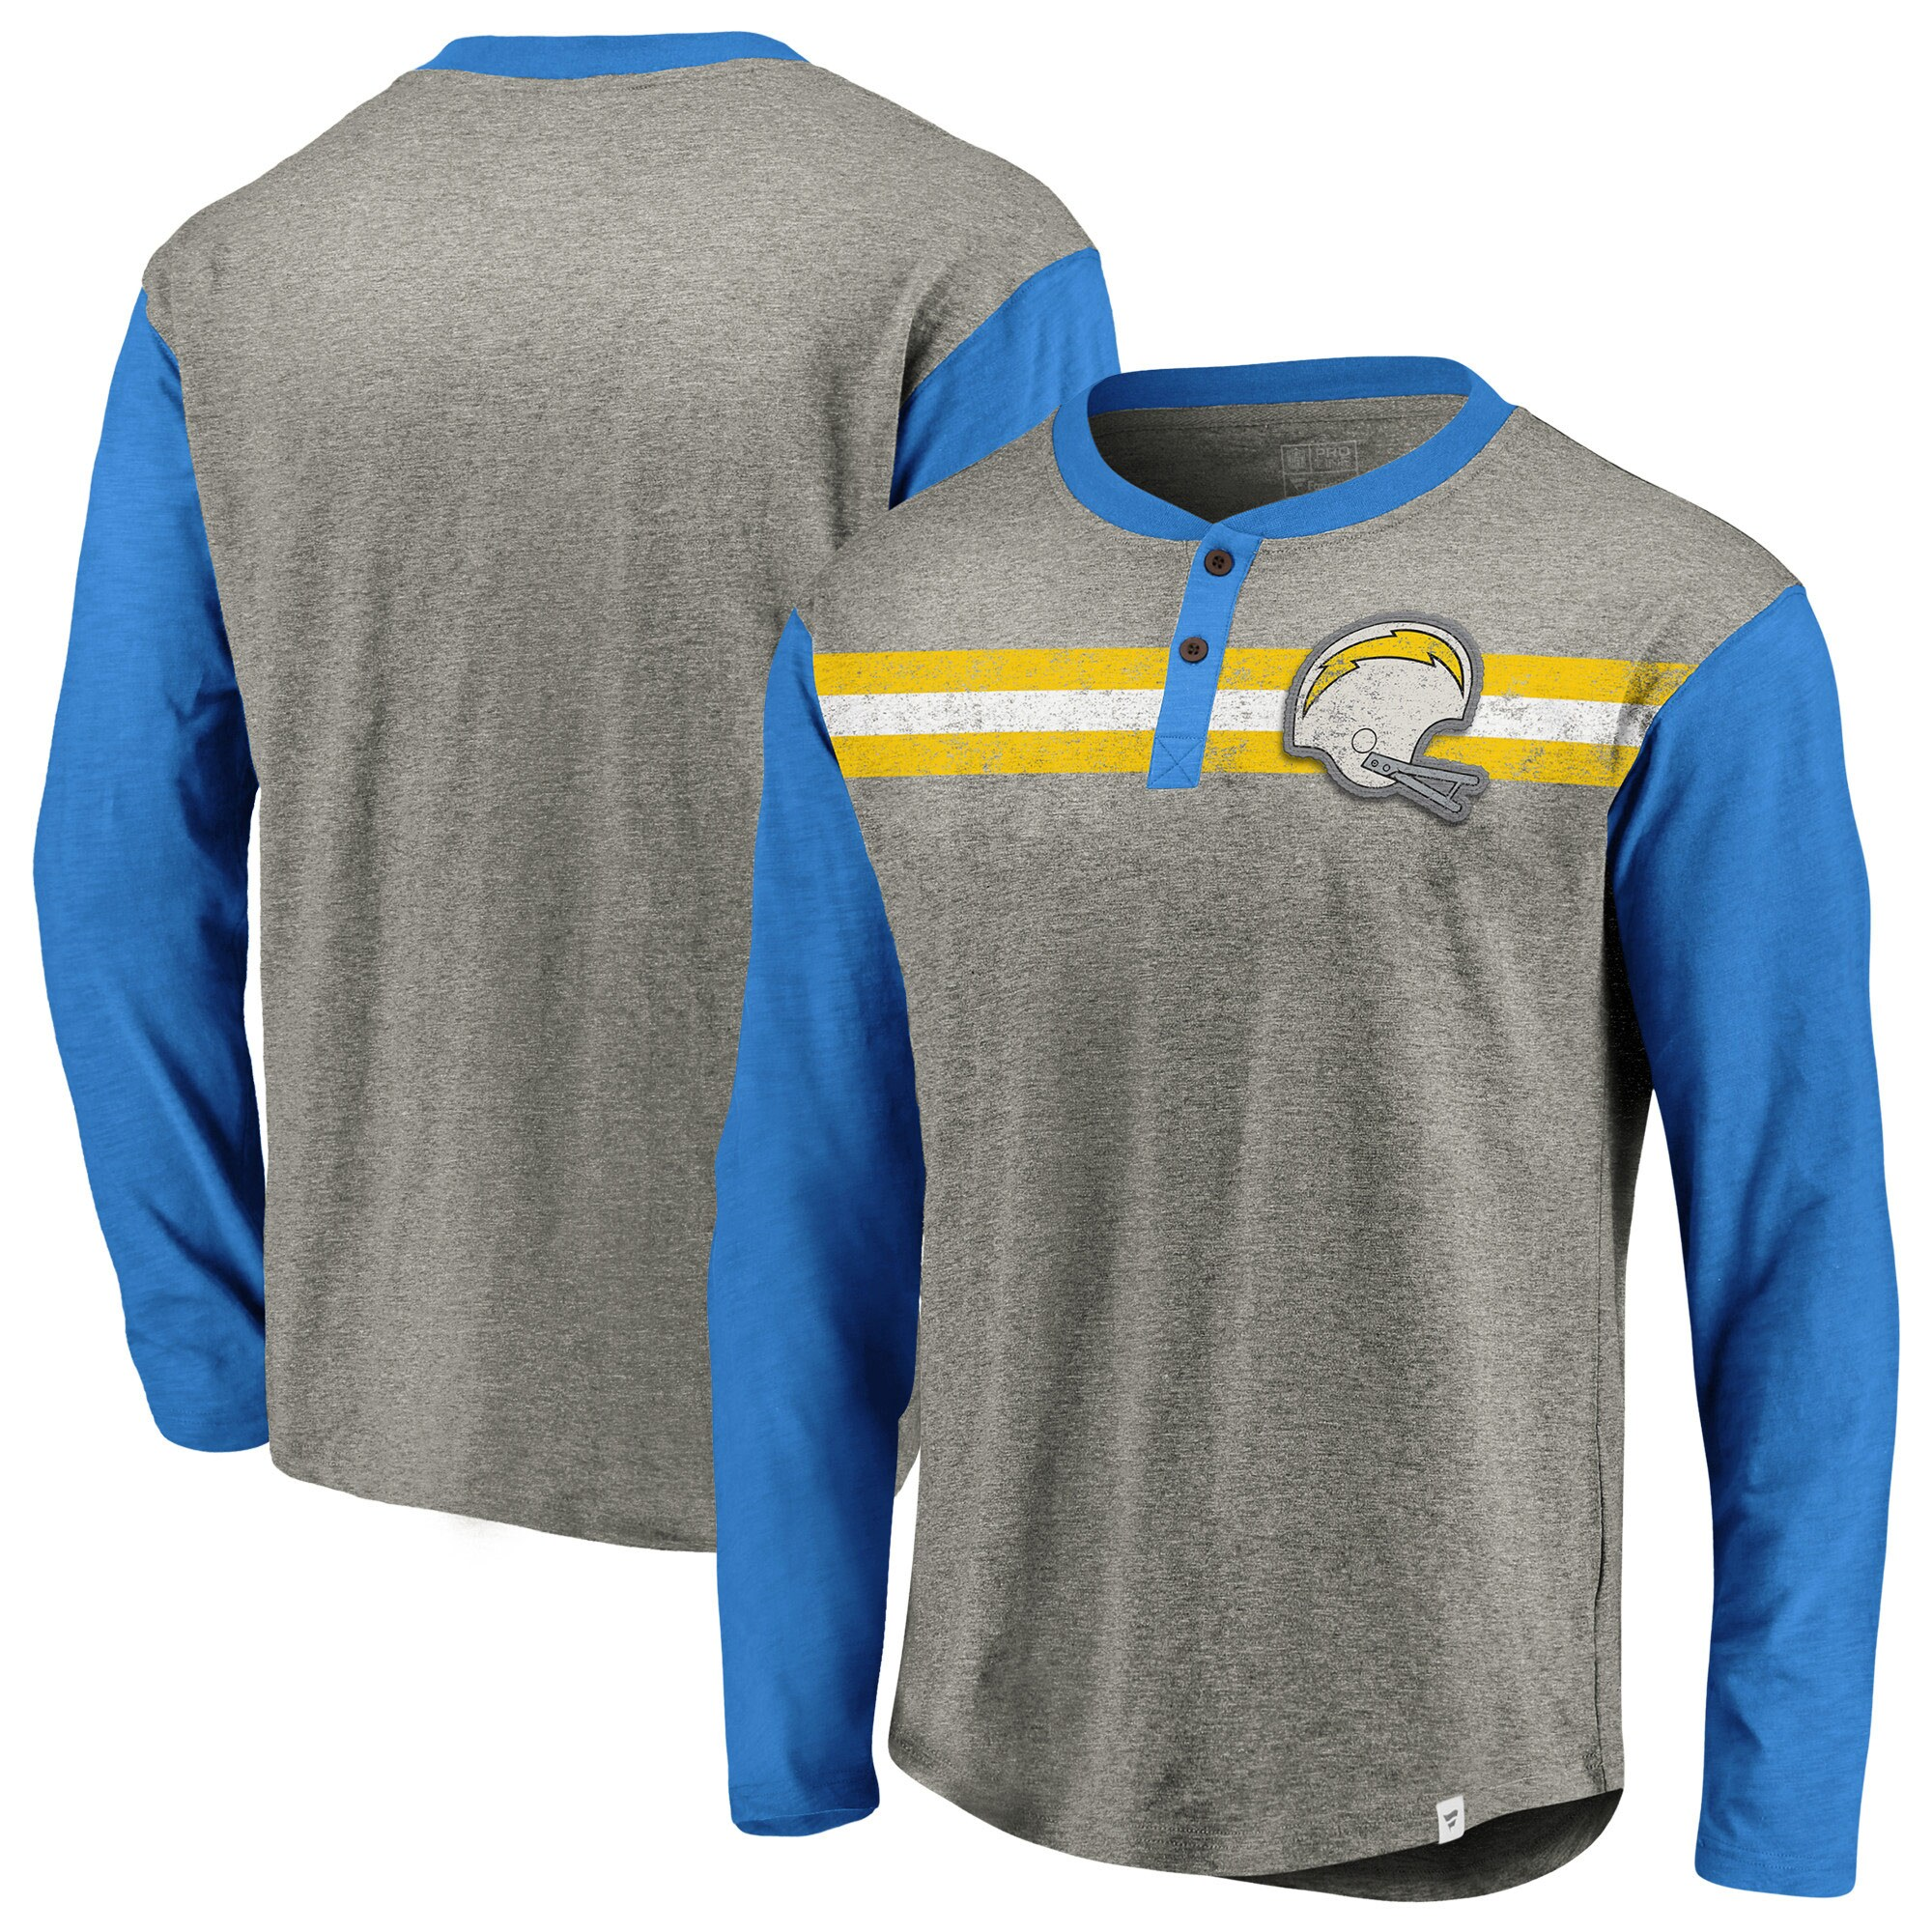 Los Angeles Chargers NFL Pro Line by Fanatics Branded Big & Tall True Classics Henley Long Sleeve T-Shirt - Heathered Gray/Powder Blue